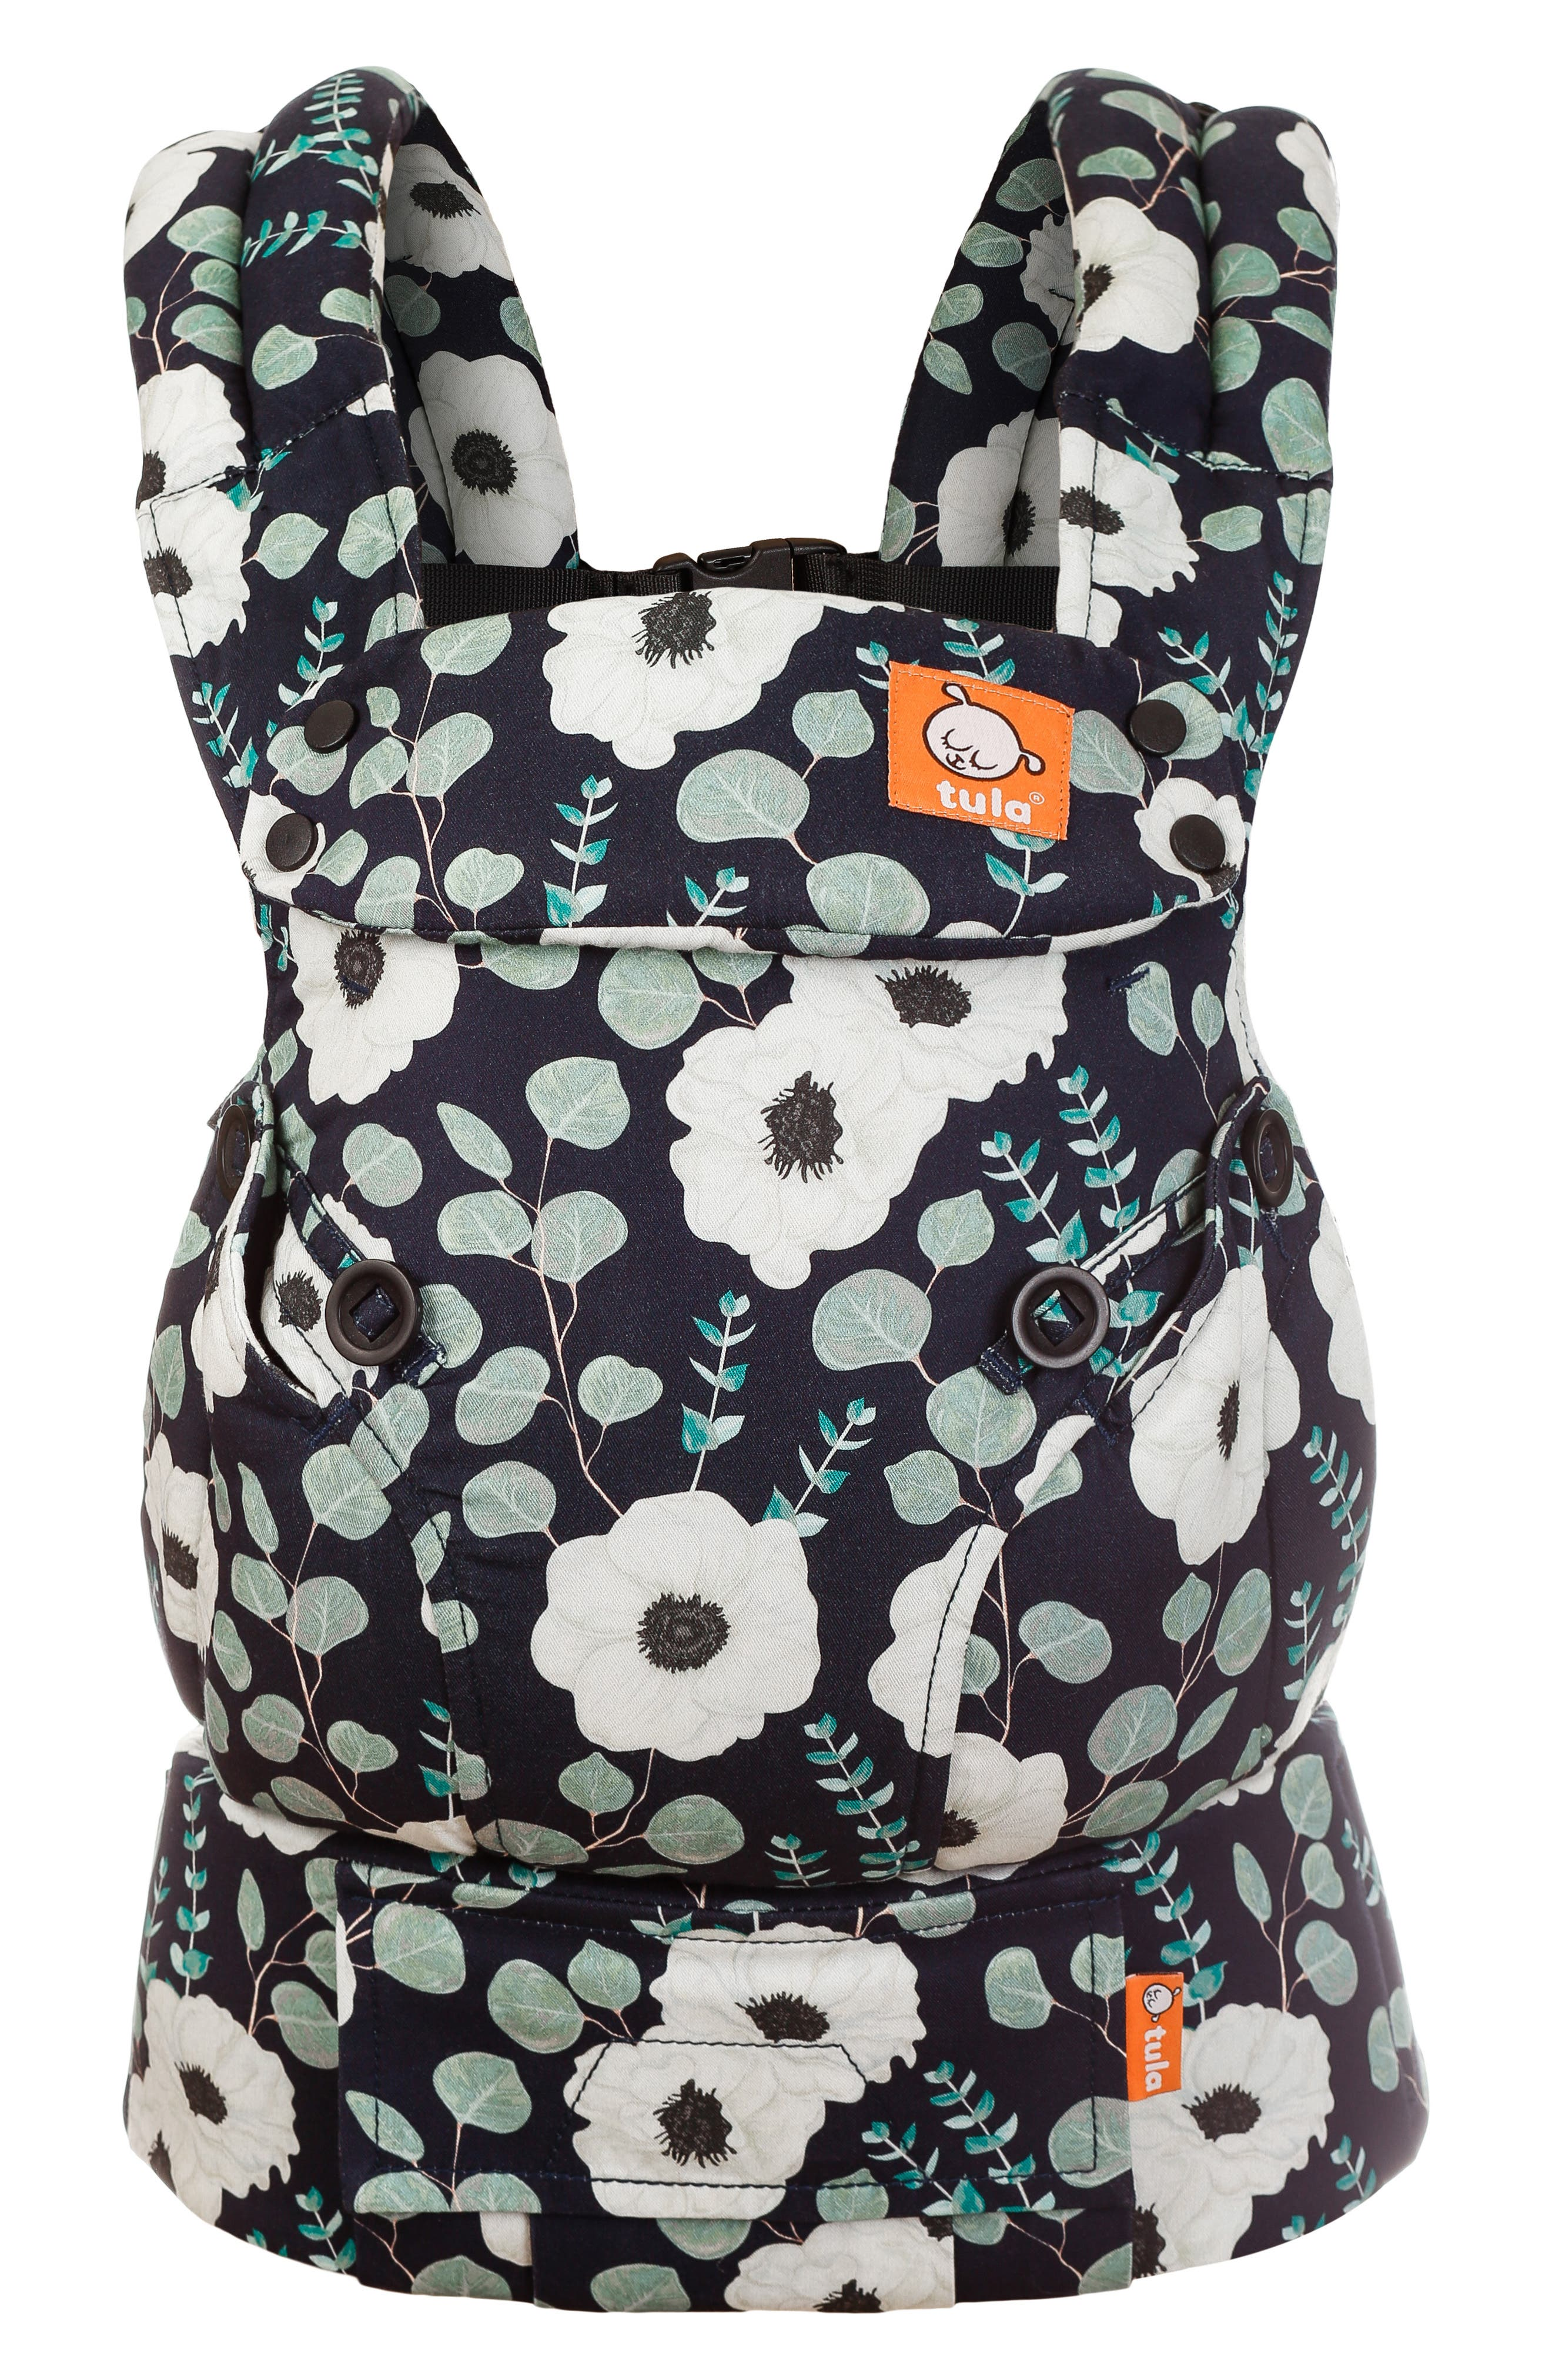 BABY TULA Explore Front/Back Baby Carrier, Main, color, SONNET